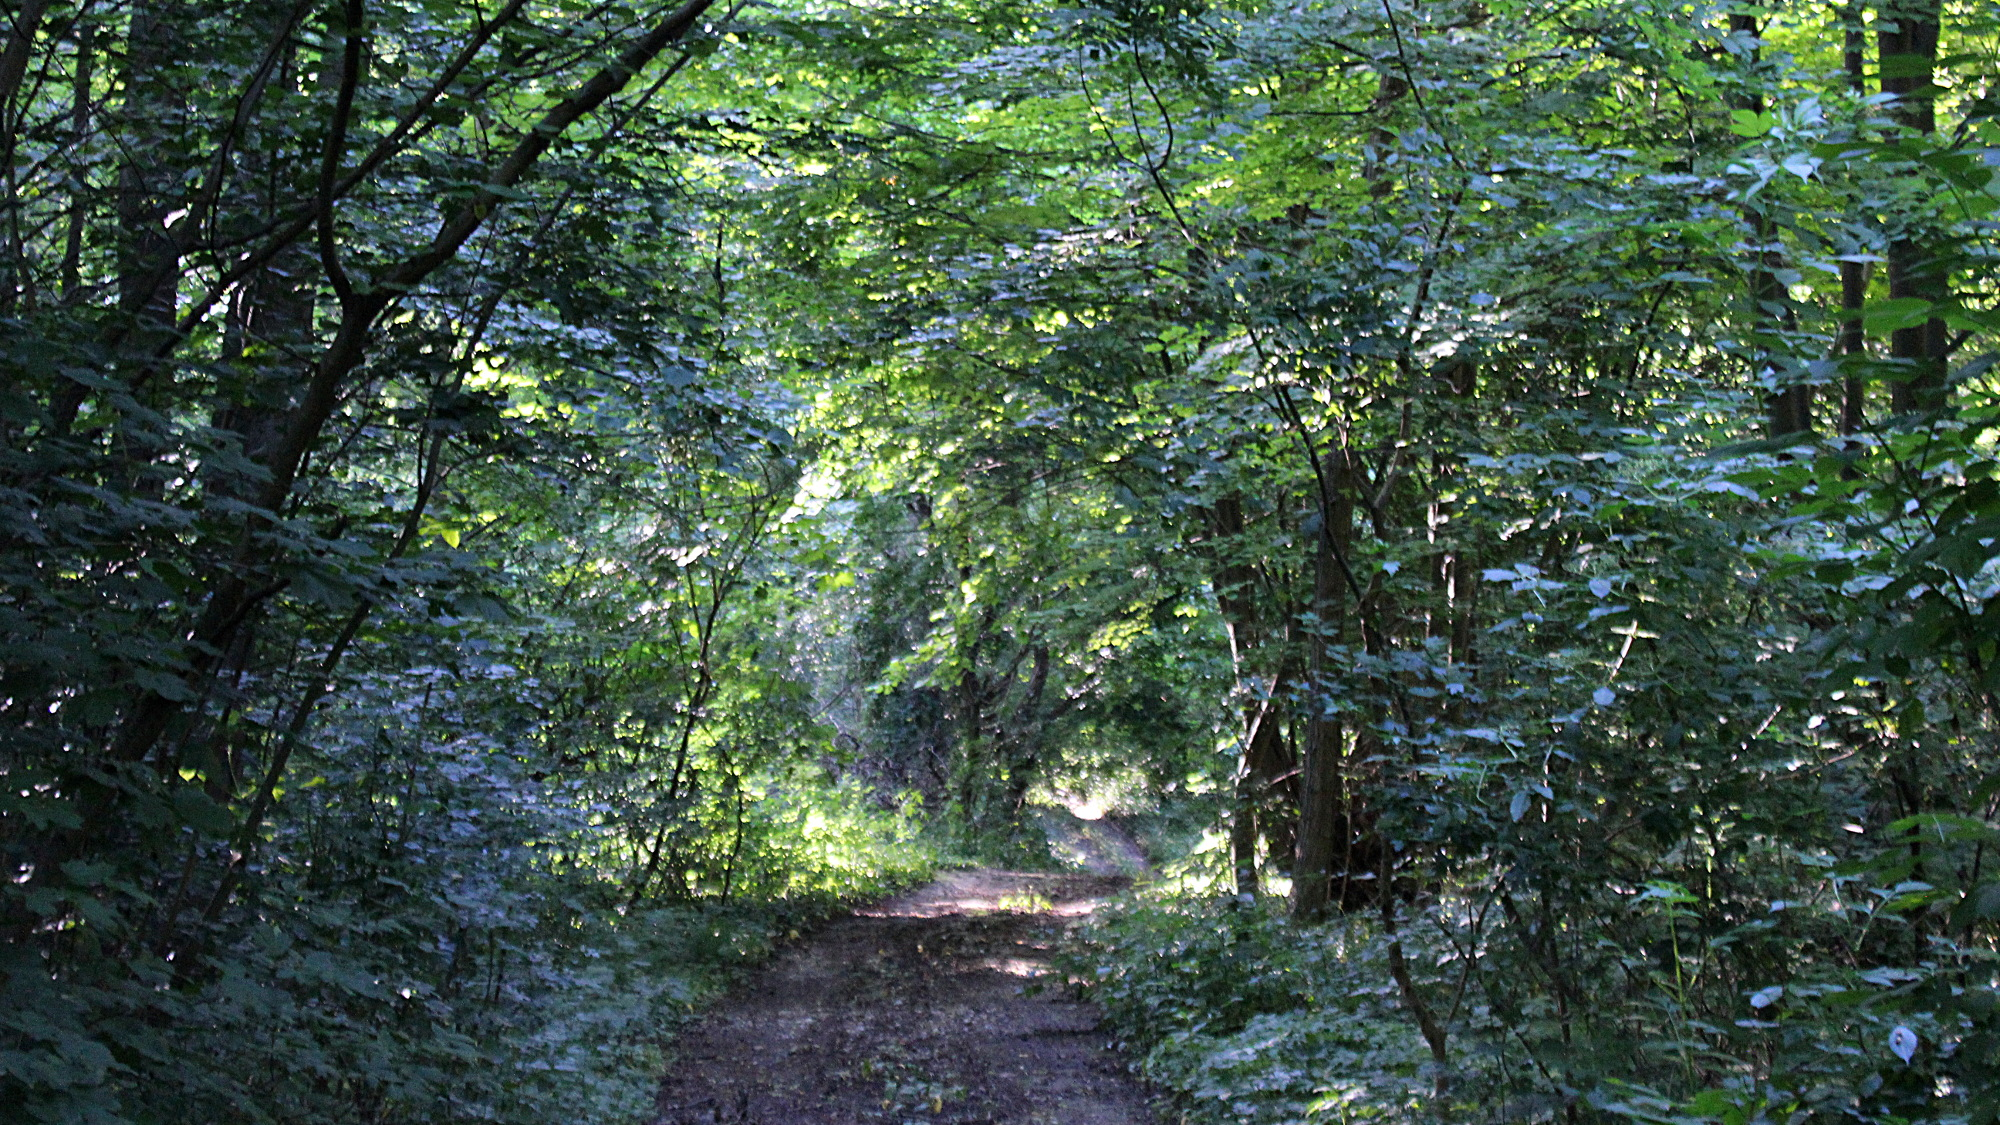 A dense forest with a small trail in the middle.